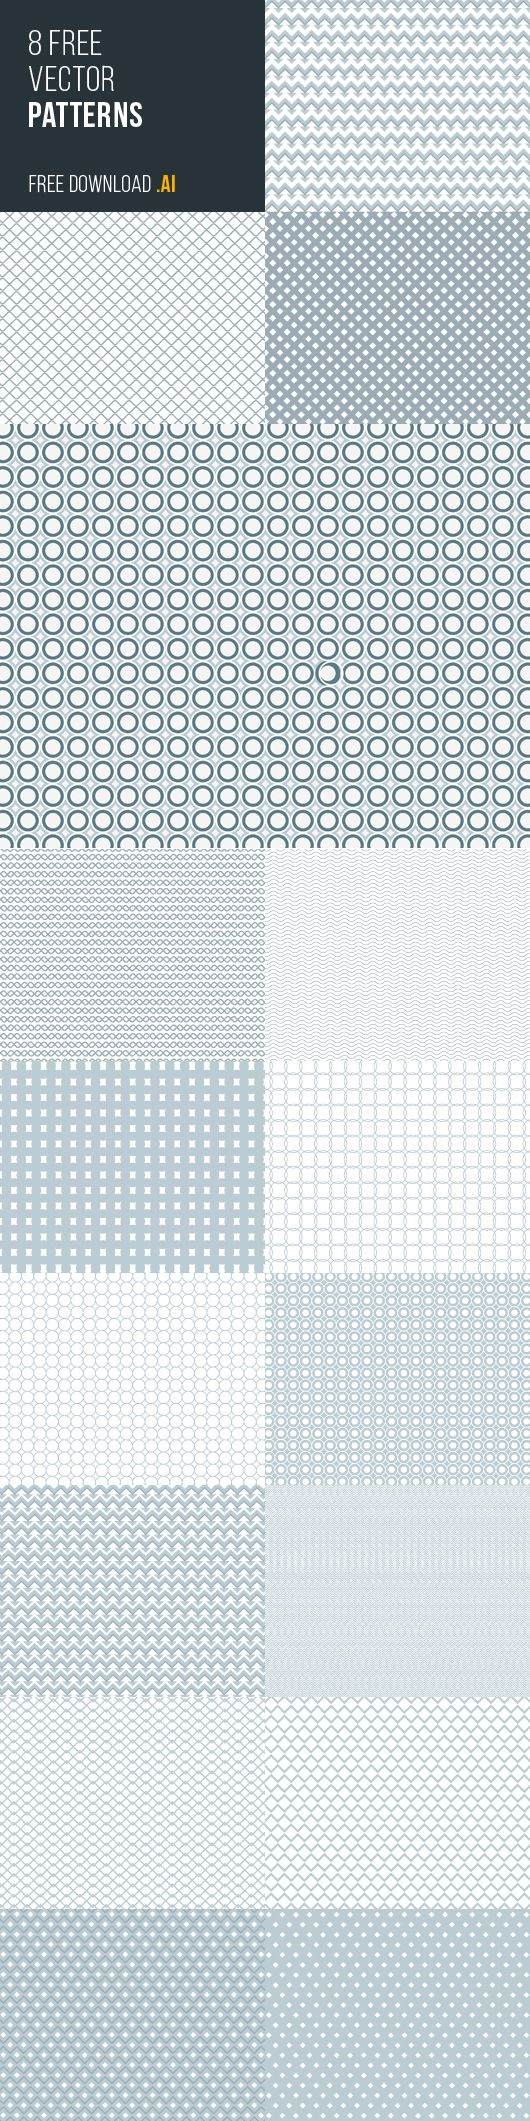 Vector patterns package